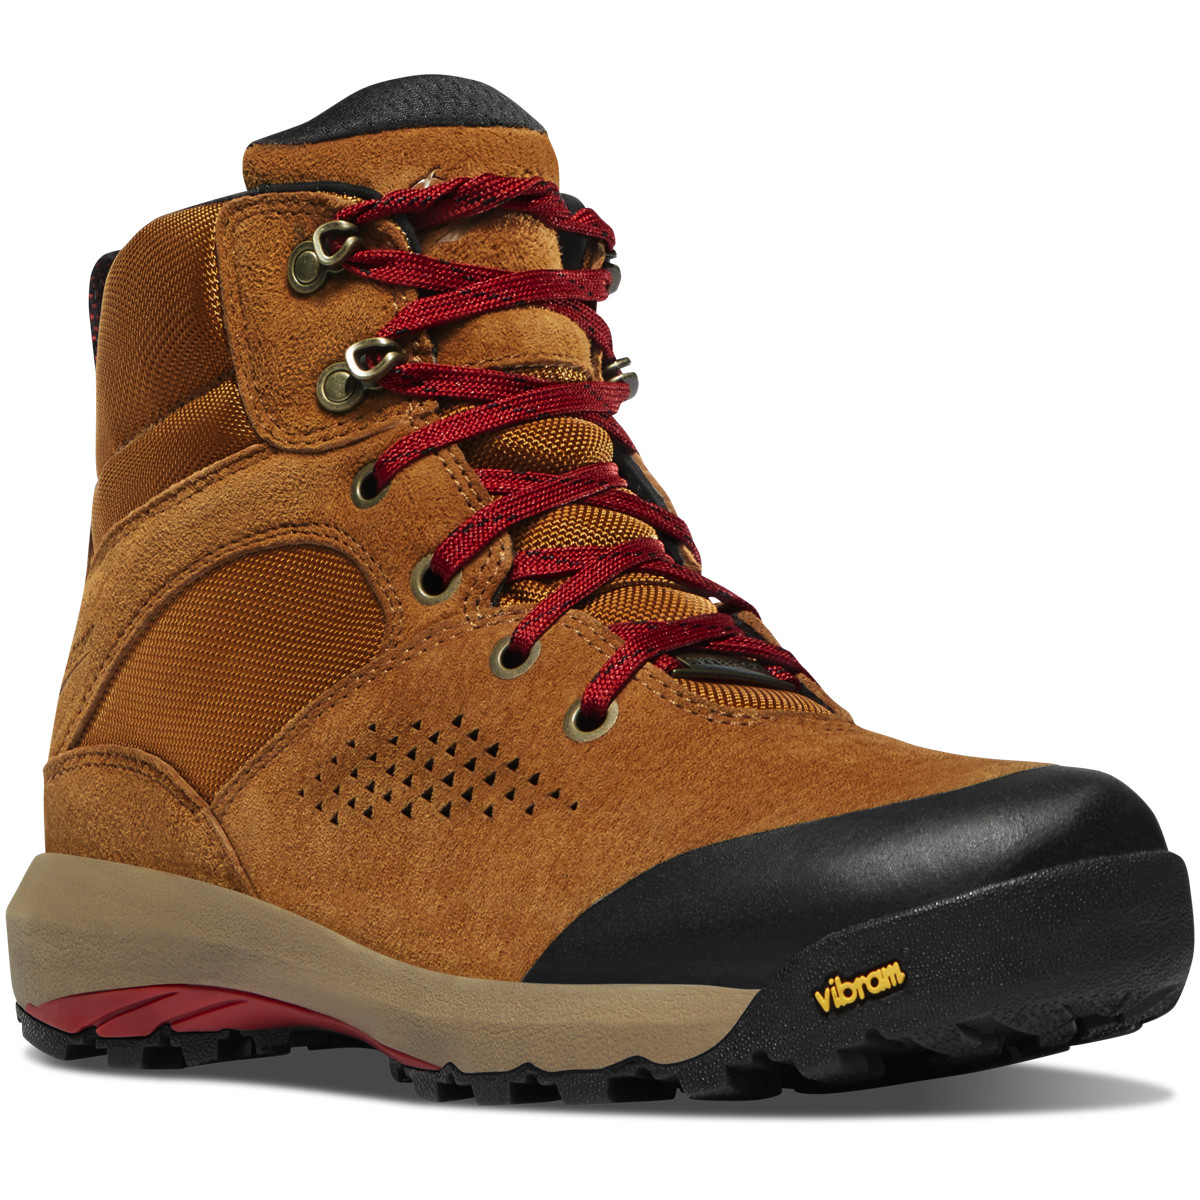 Danner Women's Inquire Mid - I have been trying out these boots for a few weeks as an alternative to my Cascade Mountain Light boots and love them. These boots are fully waterproof and lightweight but still have the aesthetic I love. I would recommend sizing up a half size in them!